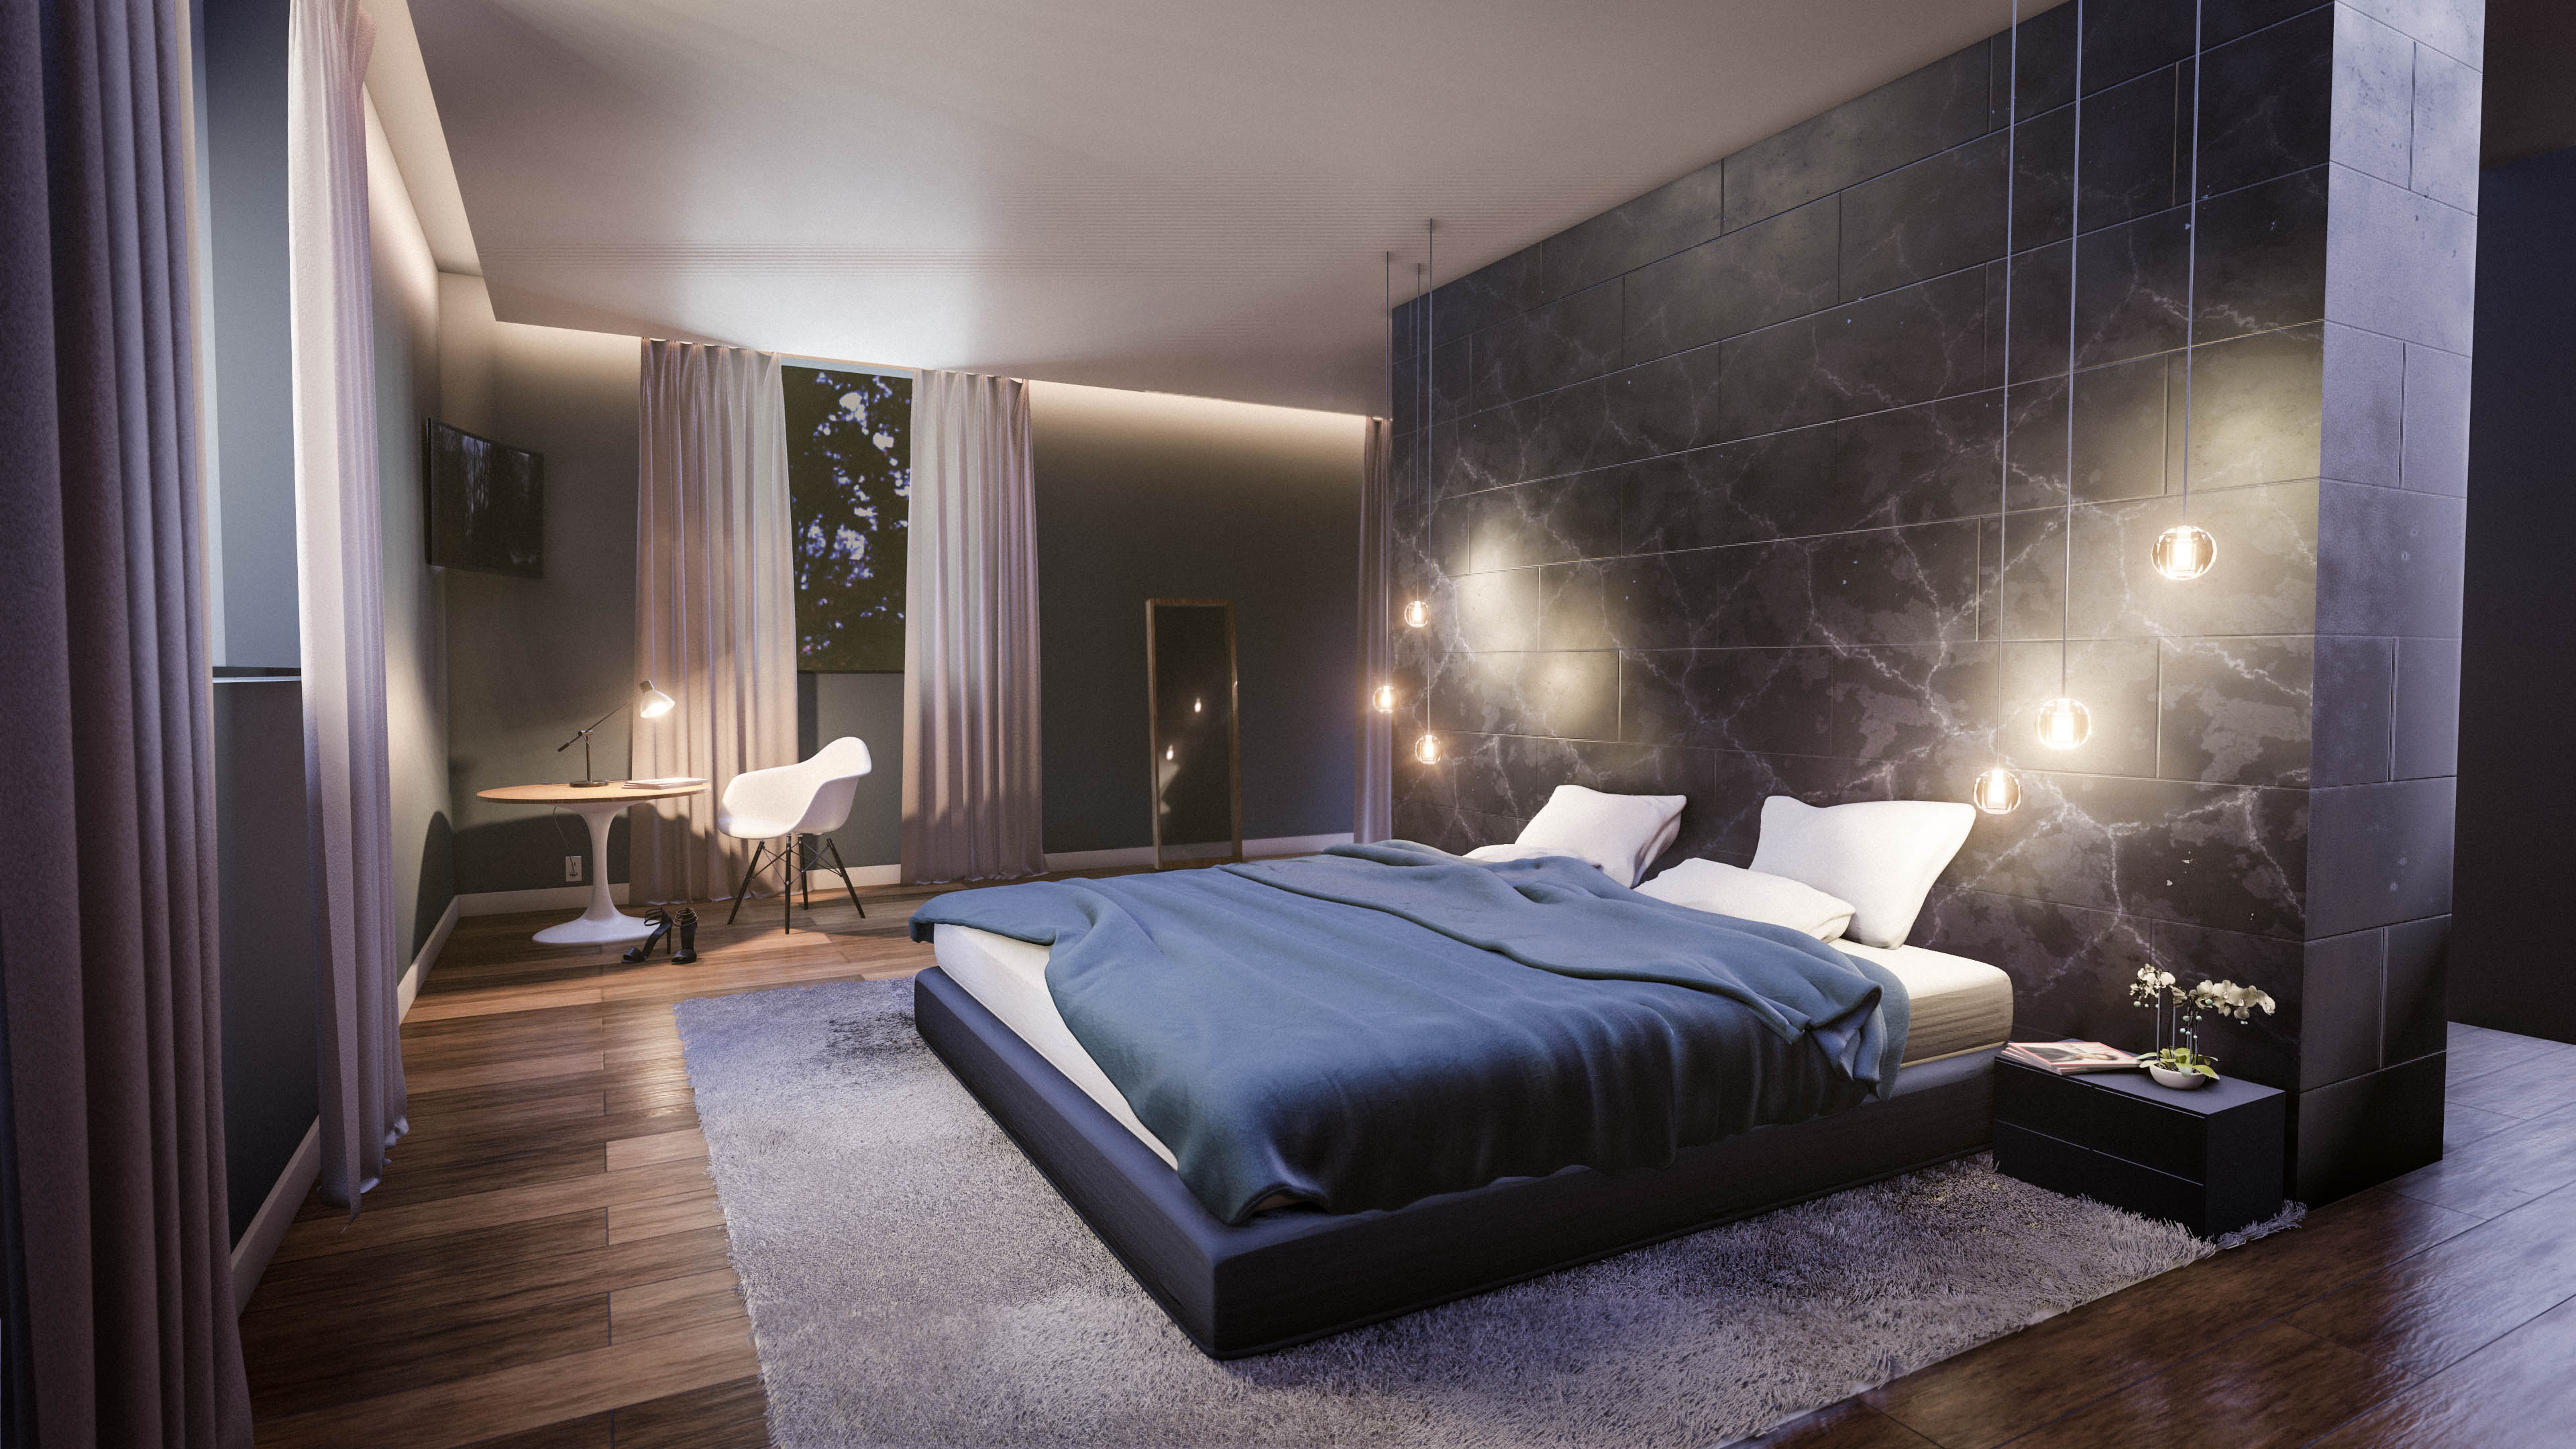 Modern Bedrooms Ideas: Create A Modern Bedroom Interior In Blender In 35 Minutes